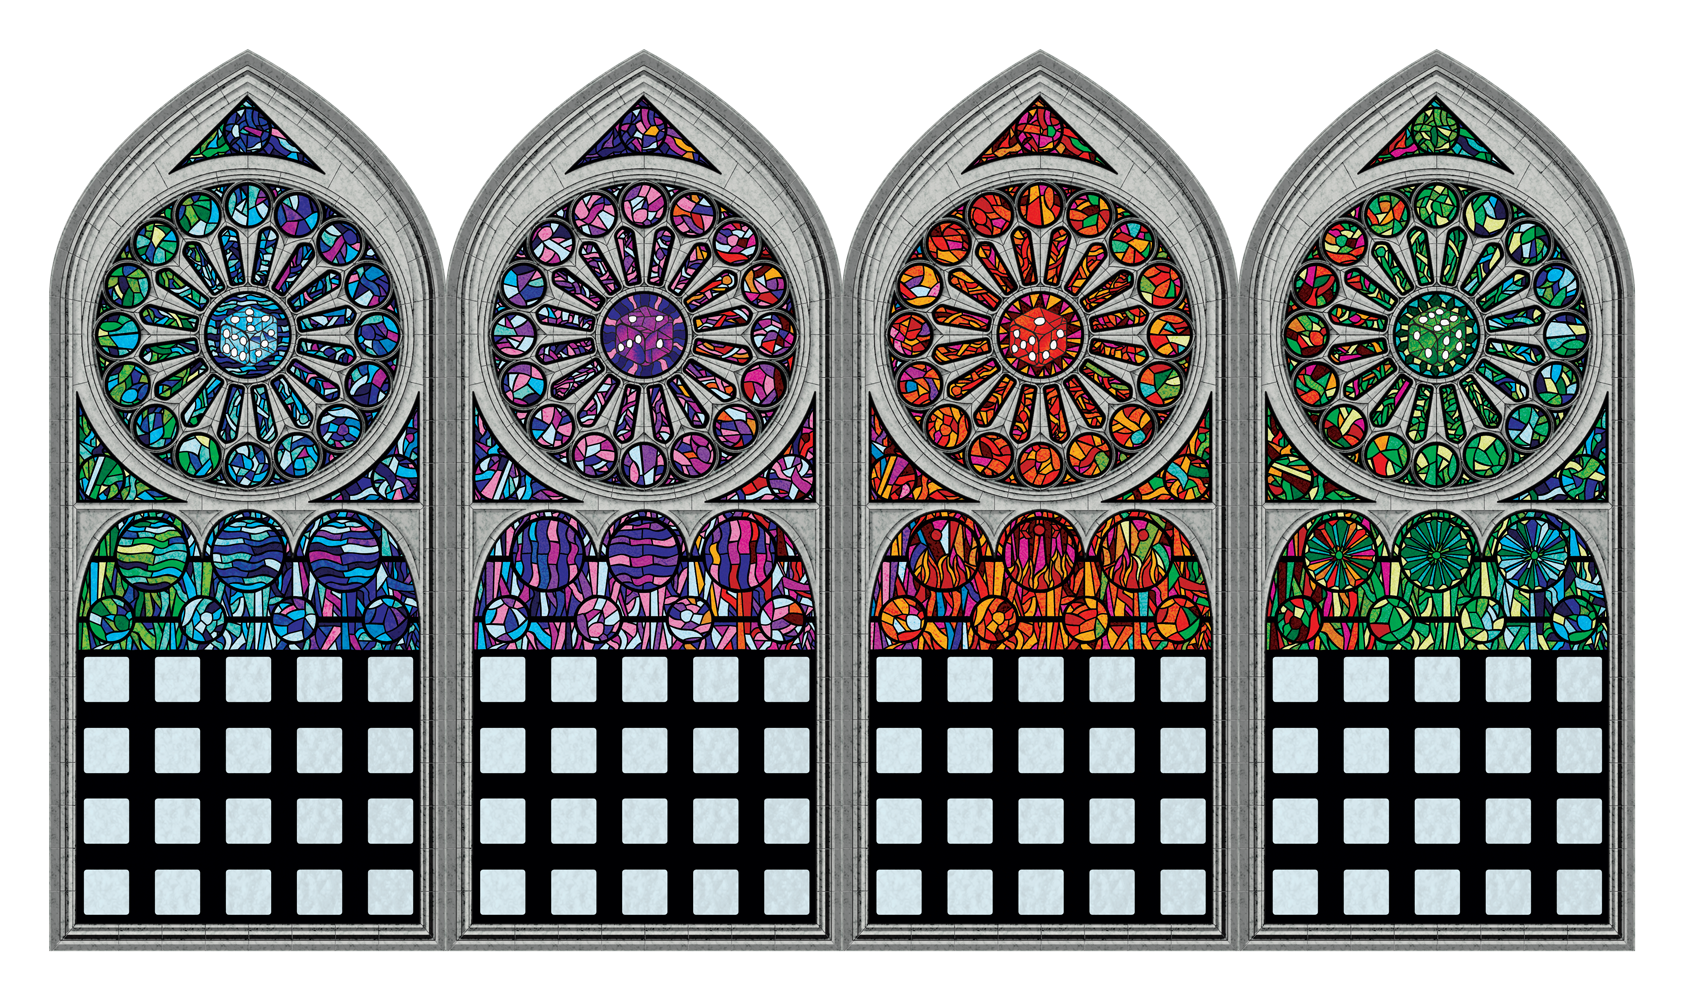 Sagrada - Stained glass player boards